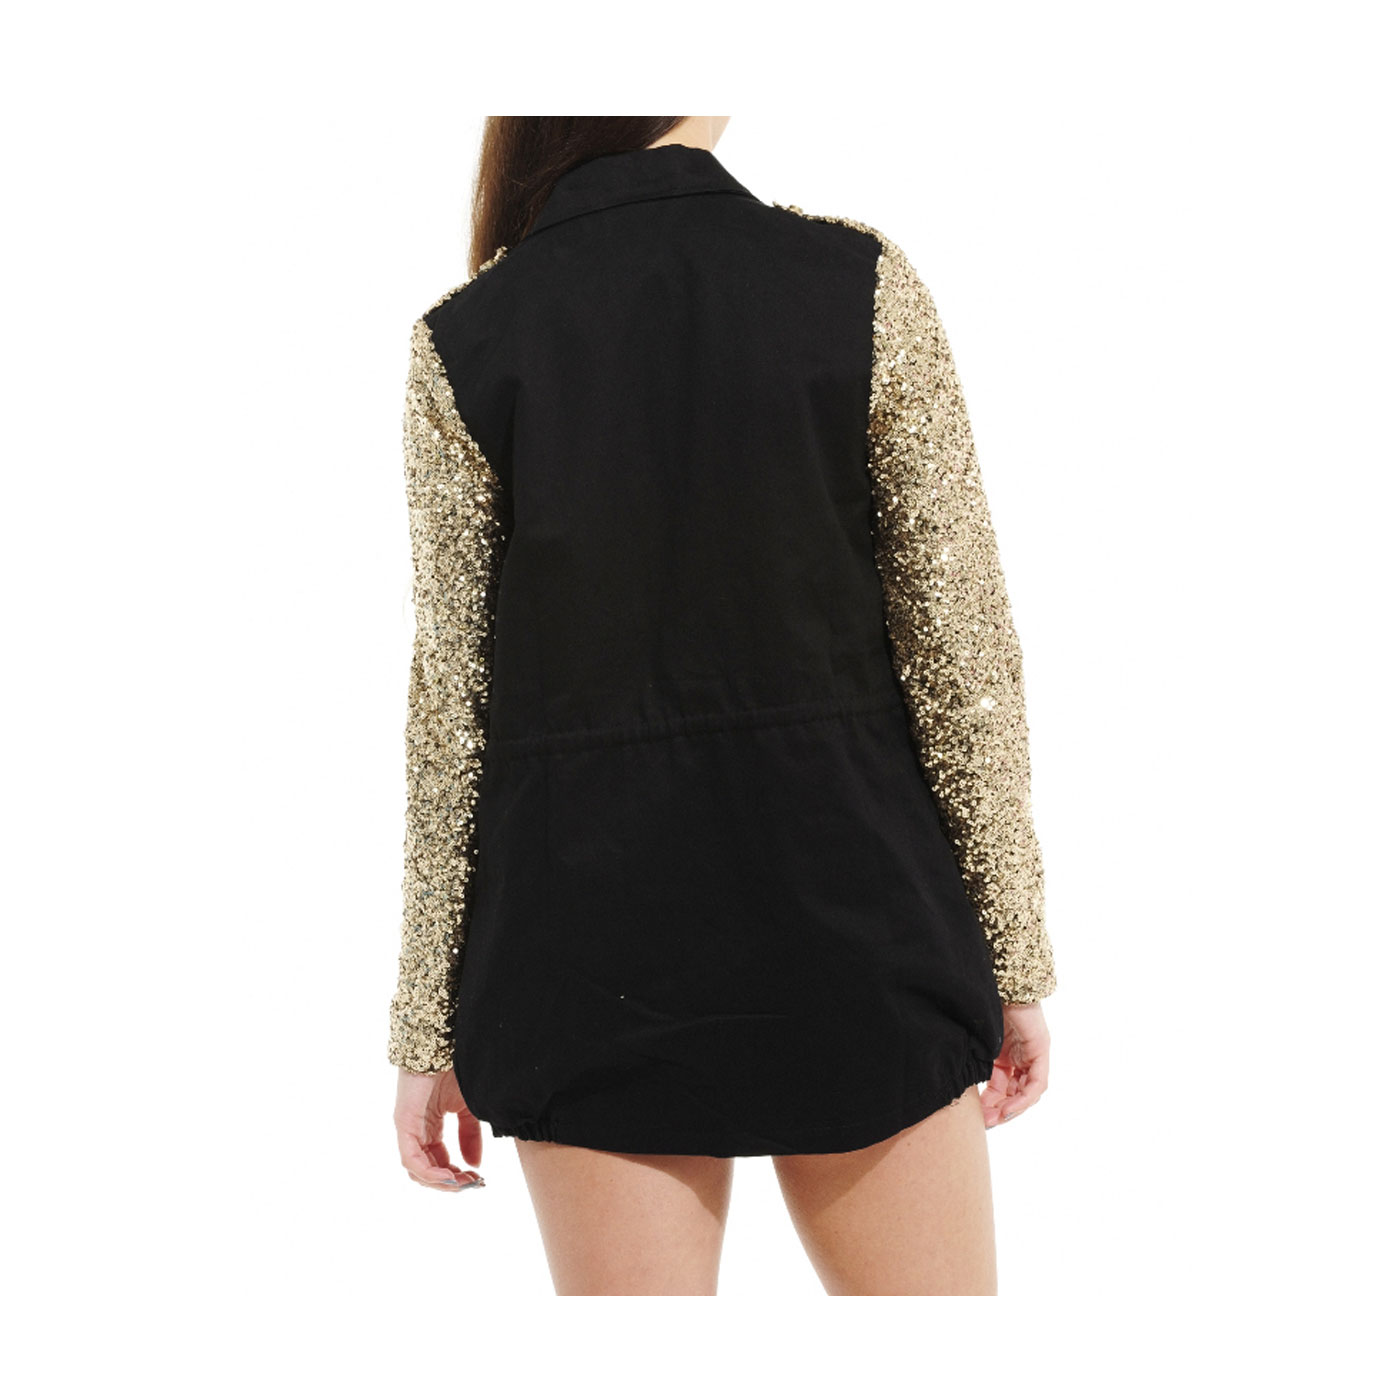 Ladies black/white/yellow sequin jacket by Joseph Ribkoff, uk 16 The jacket has long sleeves with a lapel style neckline and a zip fasten front but please note some of the sequins have come off and it.